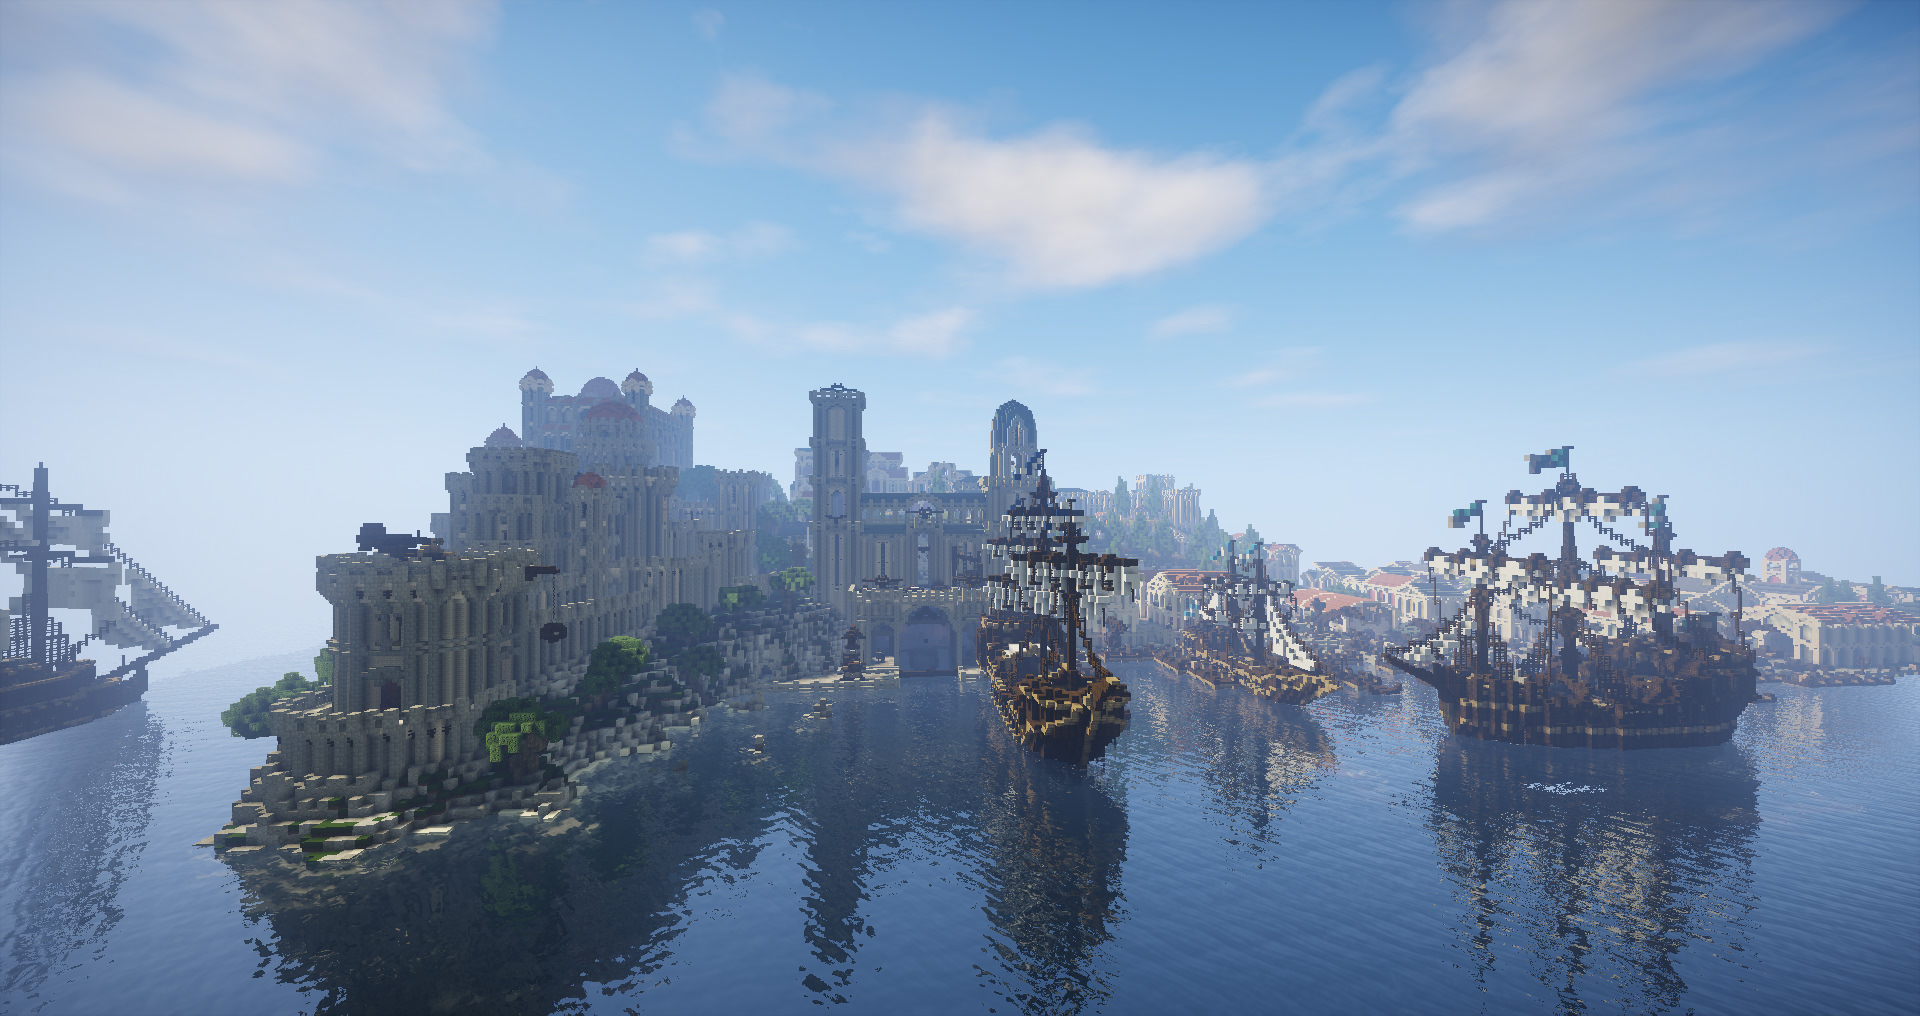 Minecraft Players Remade Middle Earth In-Game And It's Jaw